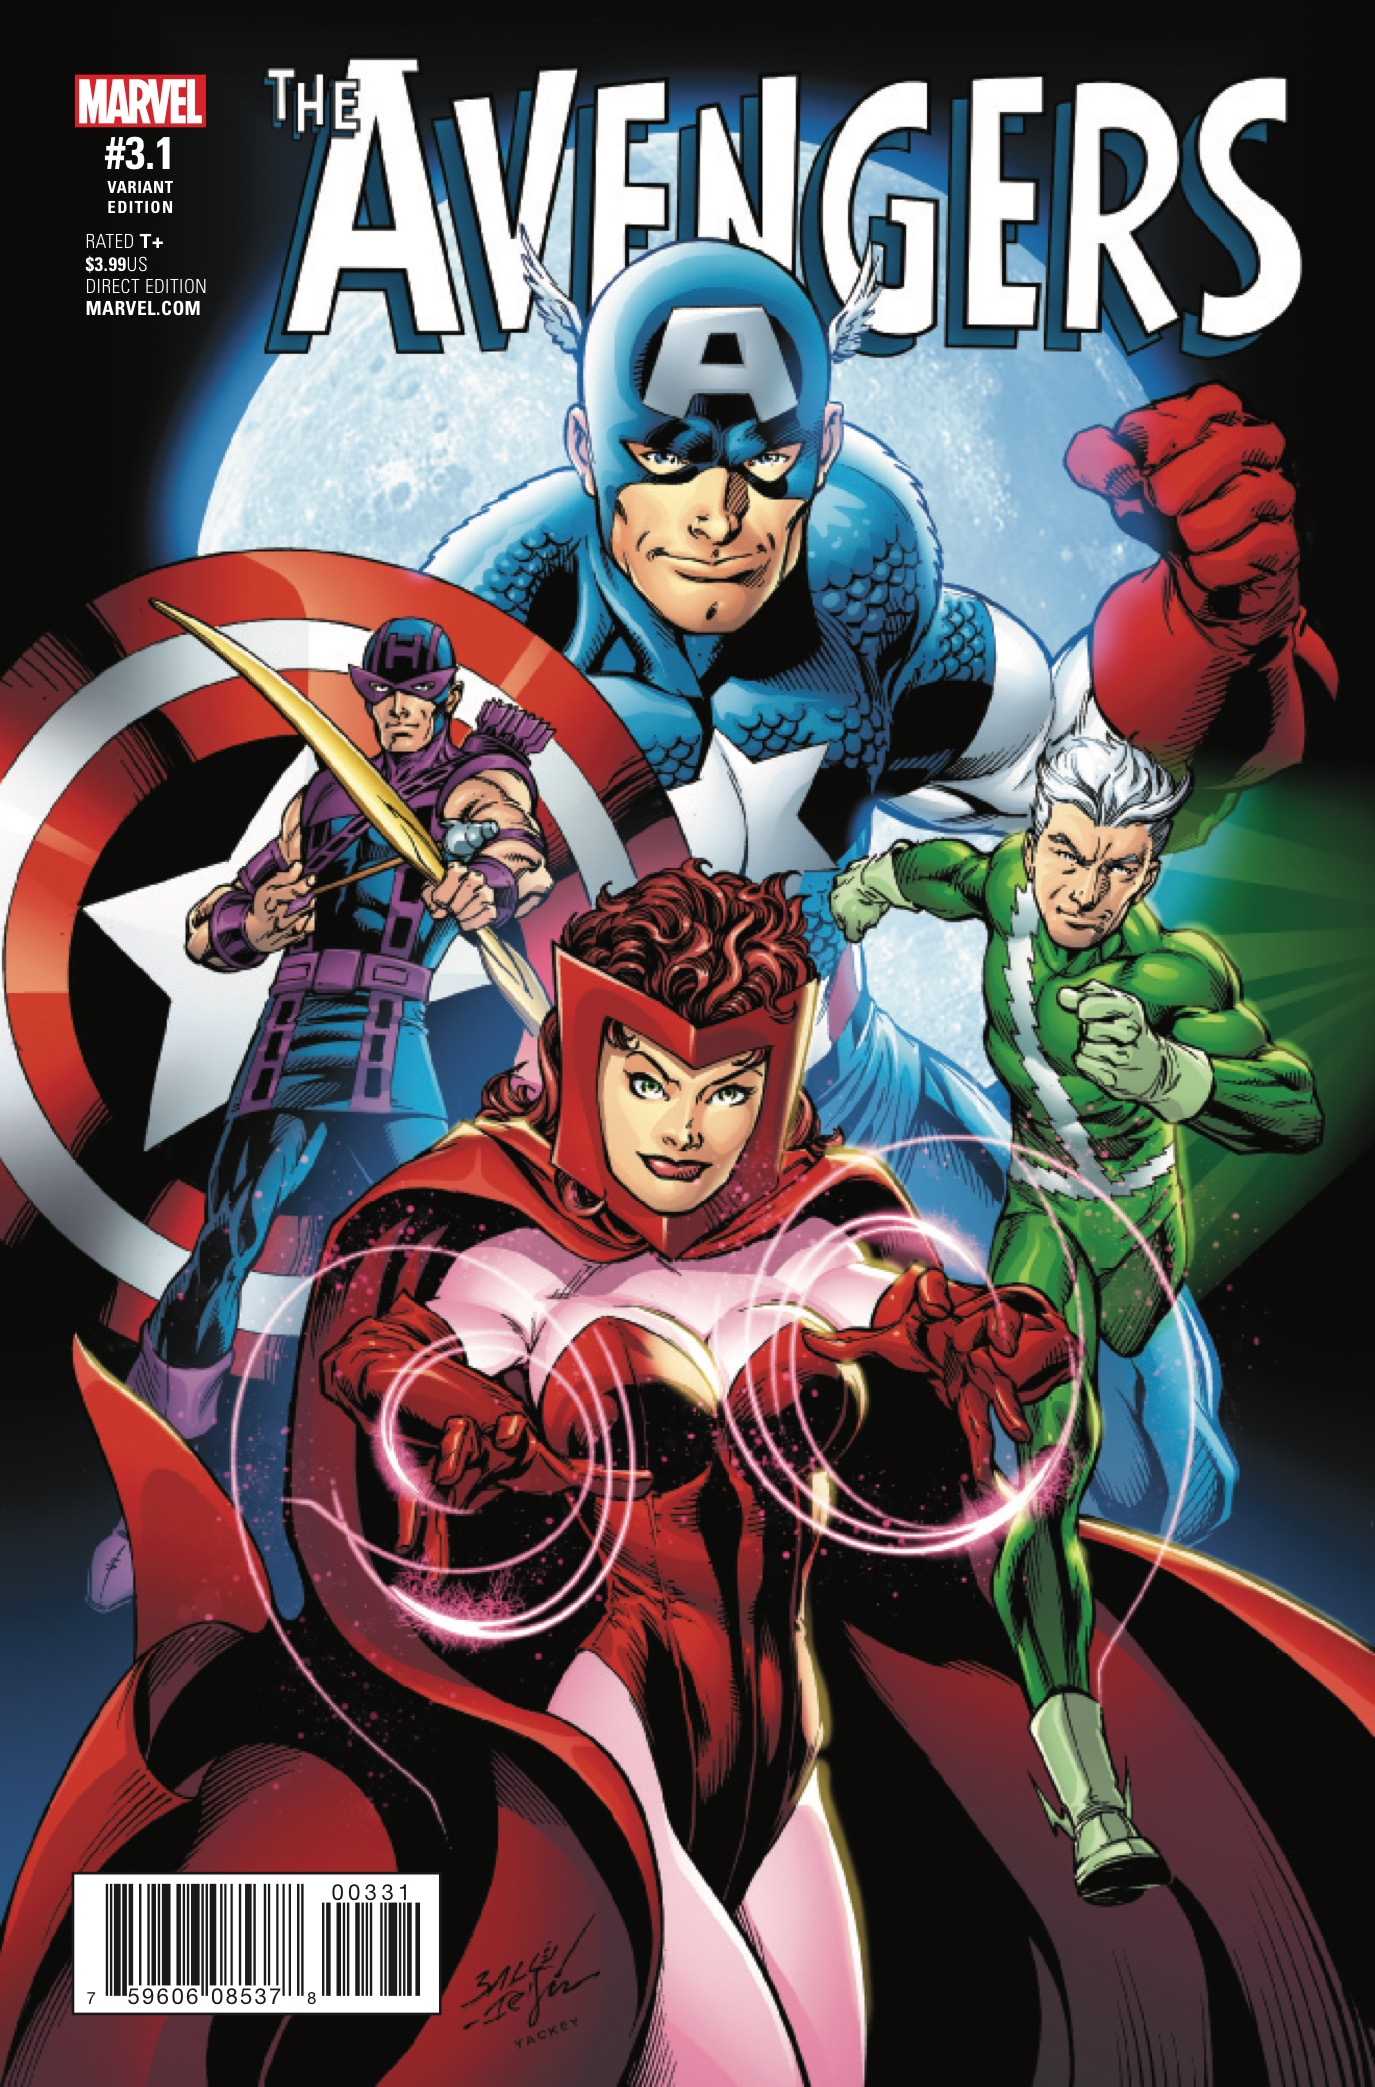 Avengers #3.1 Review